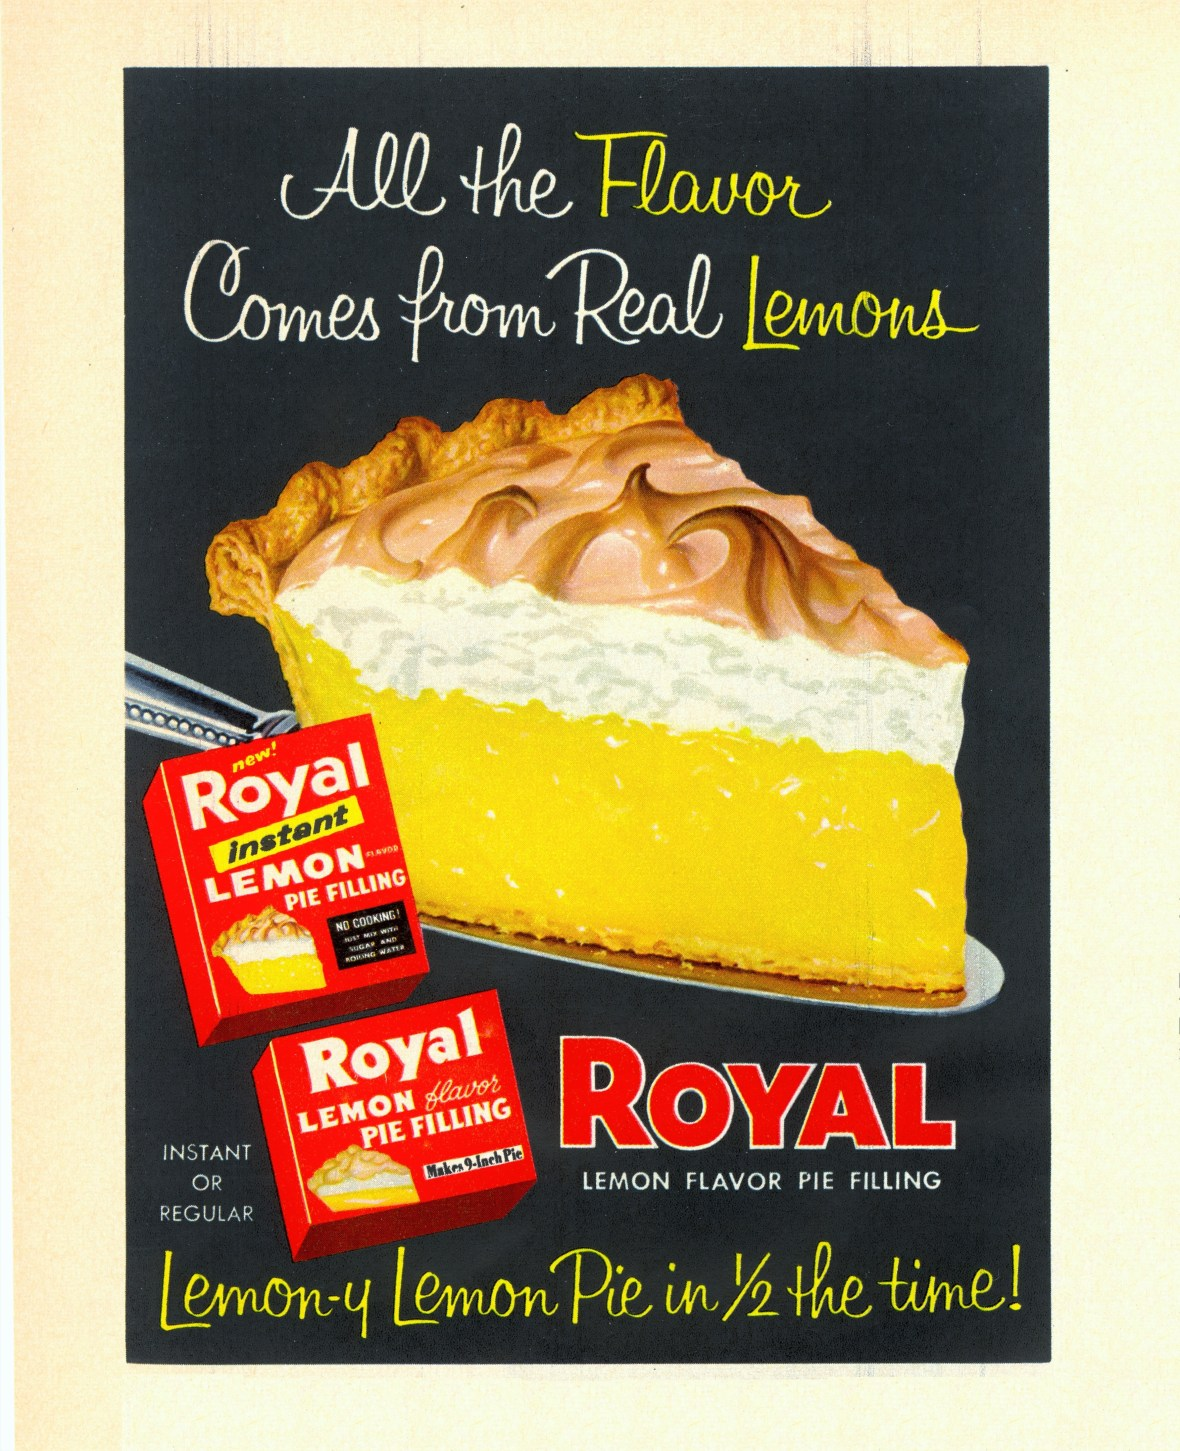 Royal Lemon Flavor Pie Filling - published in Woman's Day - October 1958